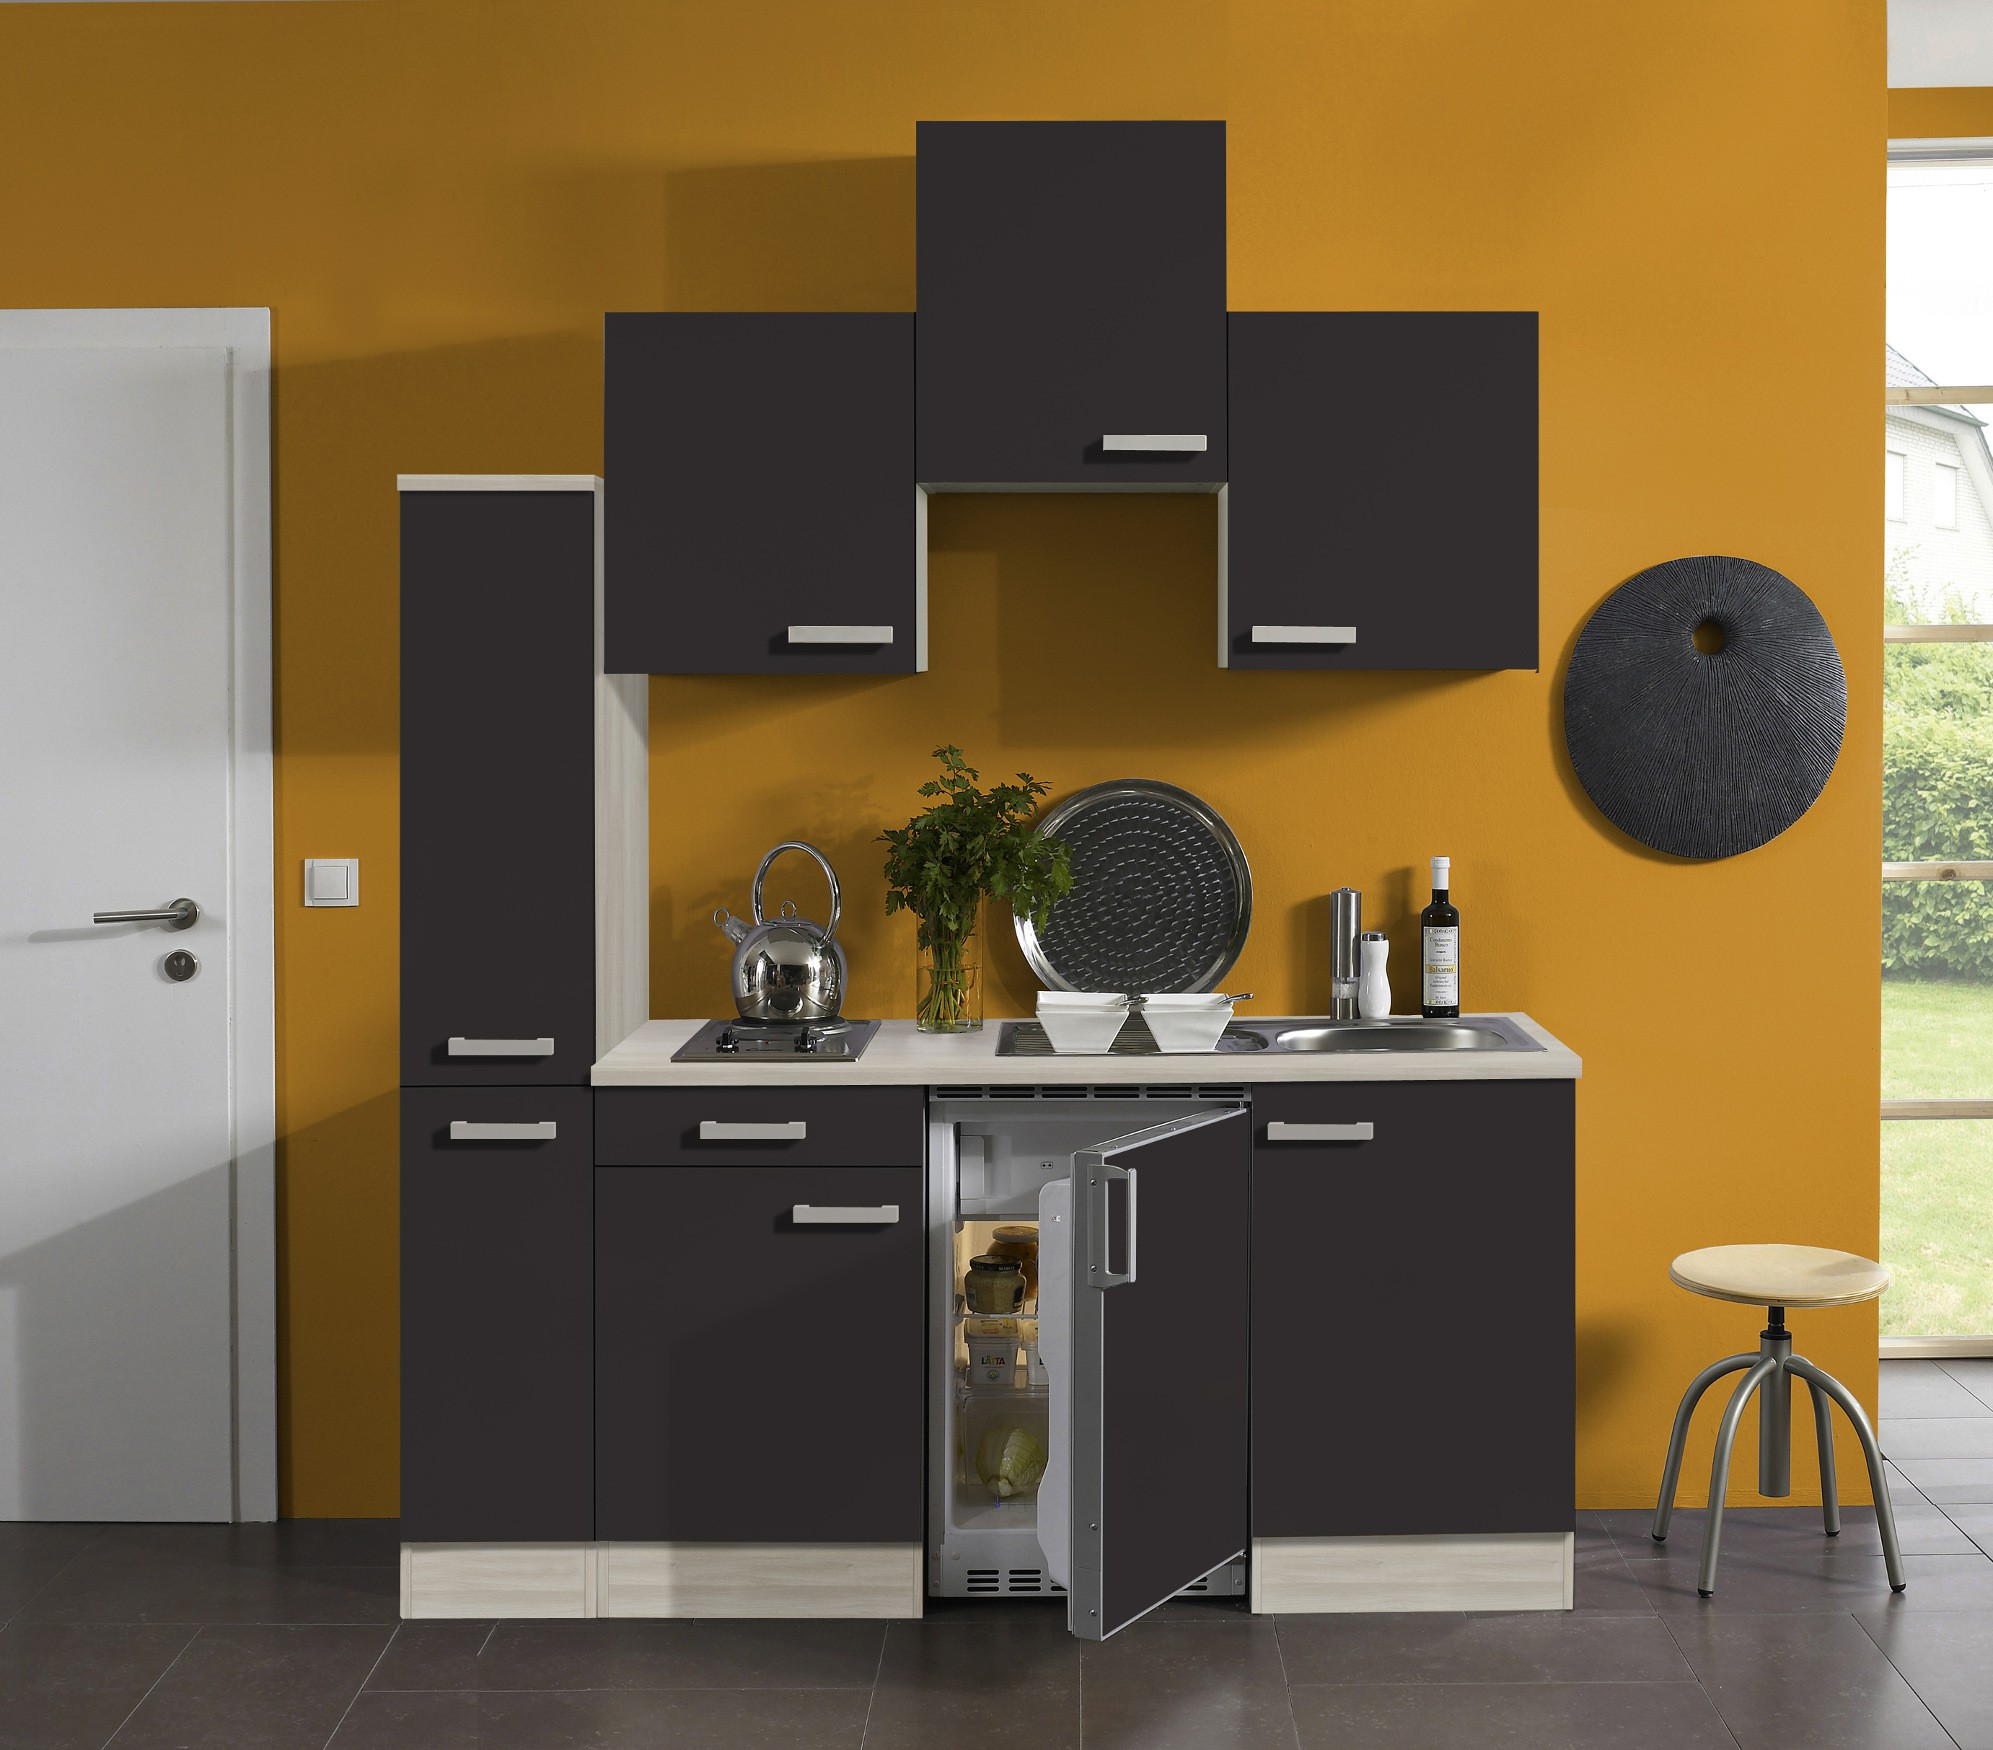 singlek che barcelona vario 1 mit elektro kochfeld breite 180 cm grau k che. Black Bedroom Furniture Sets. Home Design Ideas